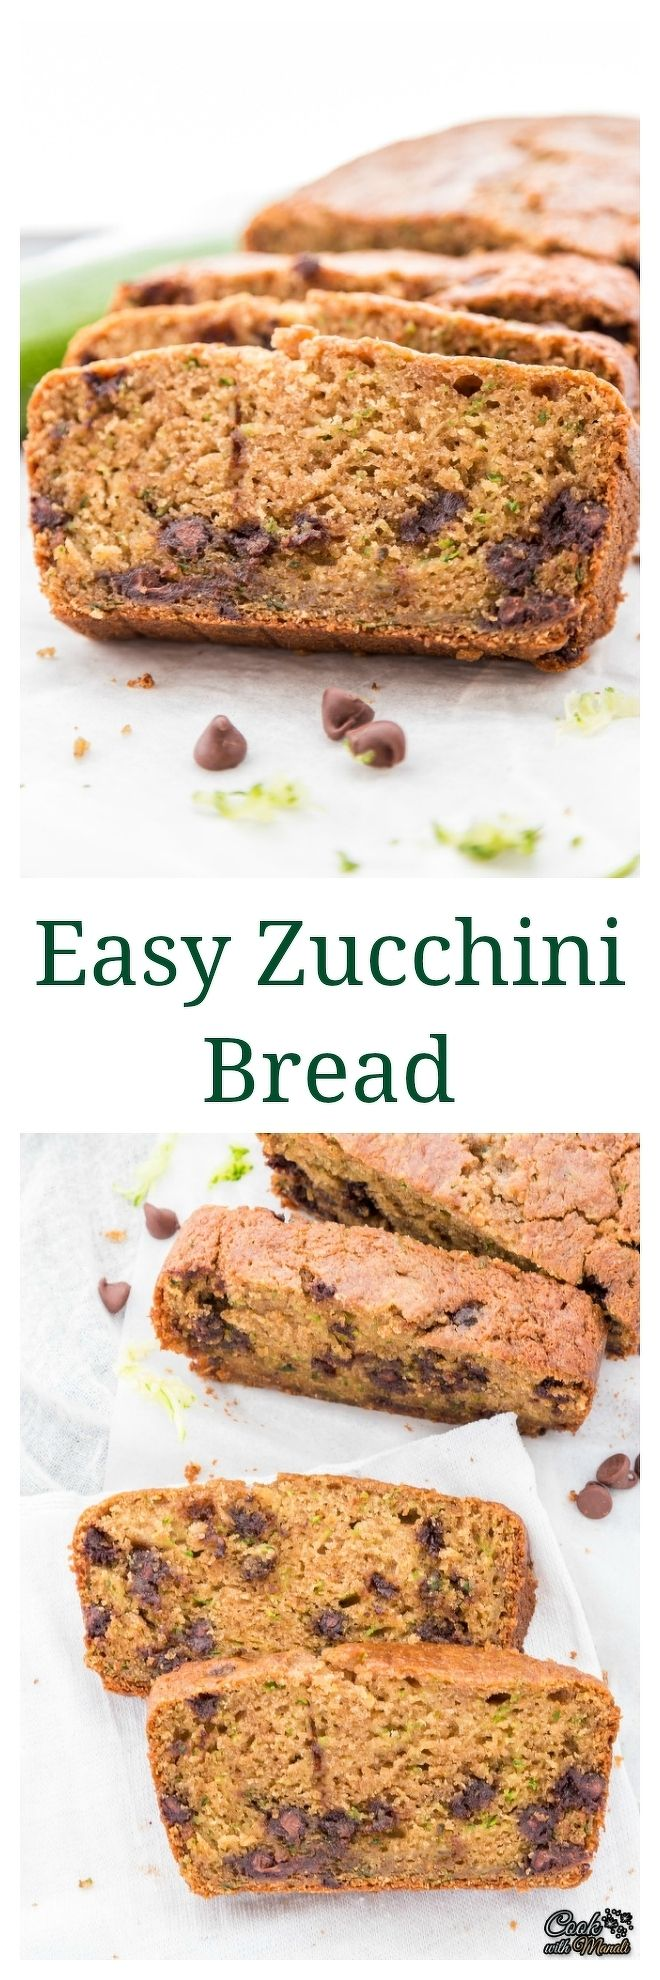 Super moist easy Zucchini Bread is simple to make and a great way to eat your veggies! Find the recipe on www.cookwithmanali.com